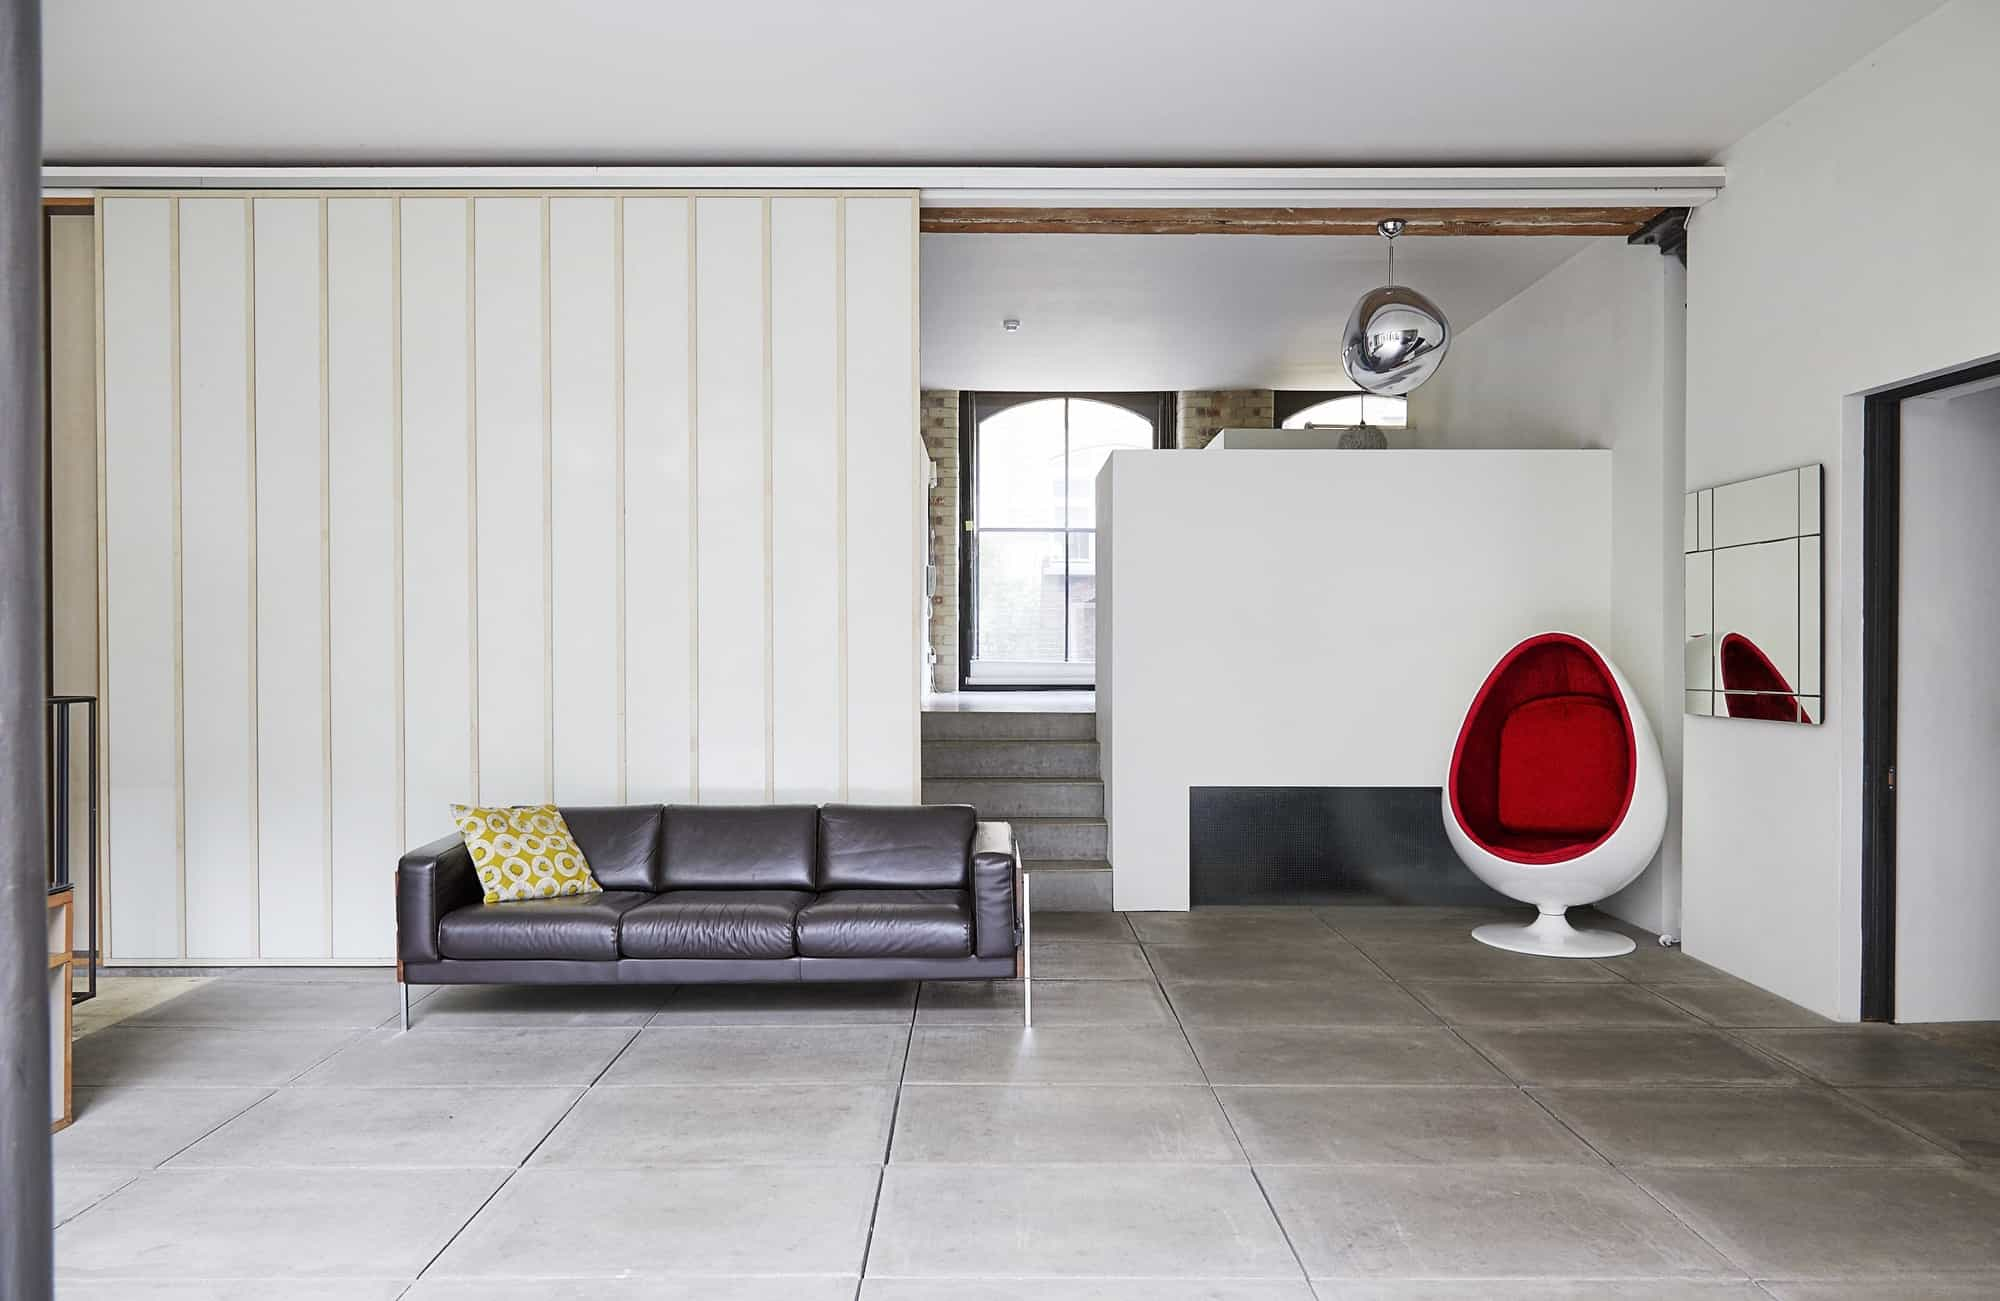 Dingley EC1V - A minimalist Japanese style apartment location with enclosed courtyard - The Location Guys